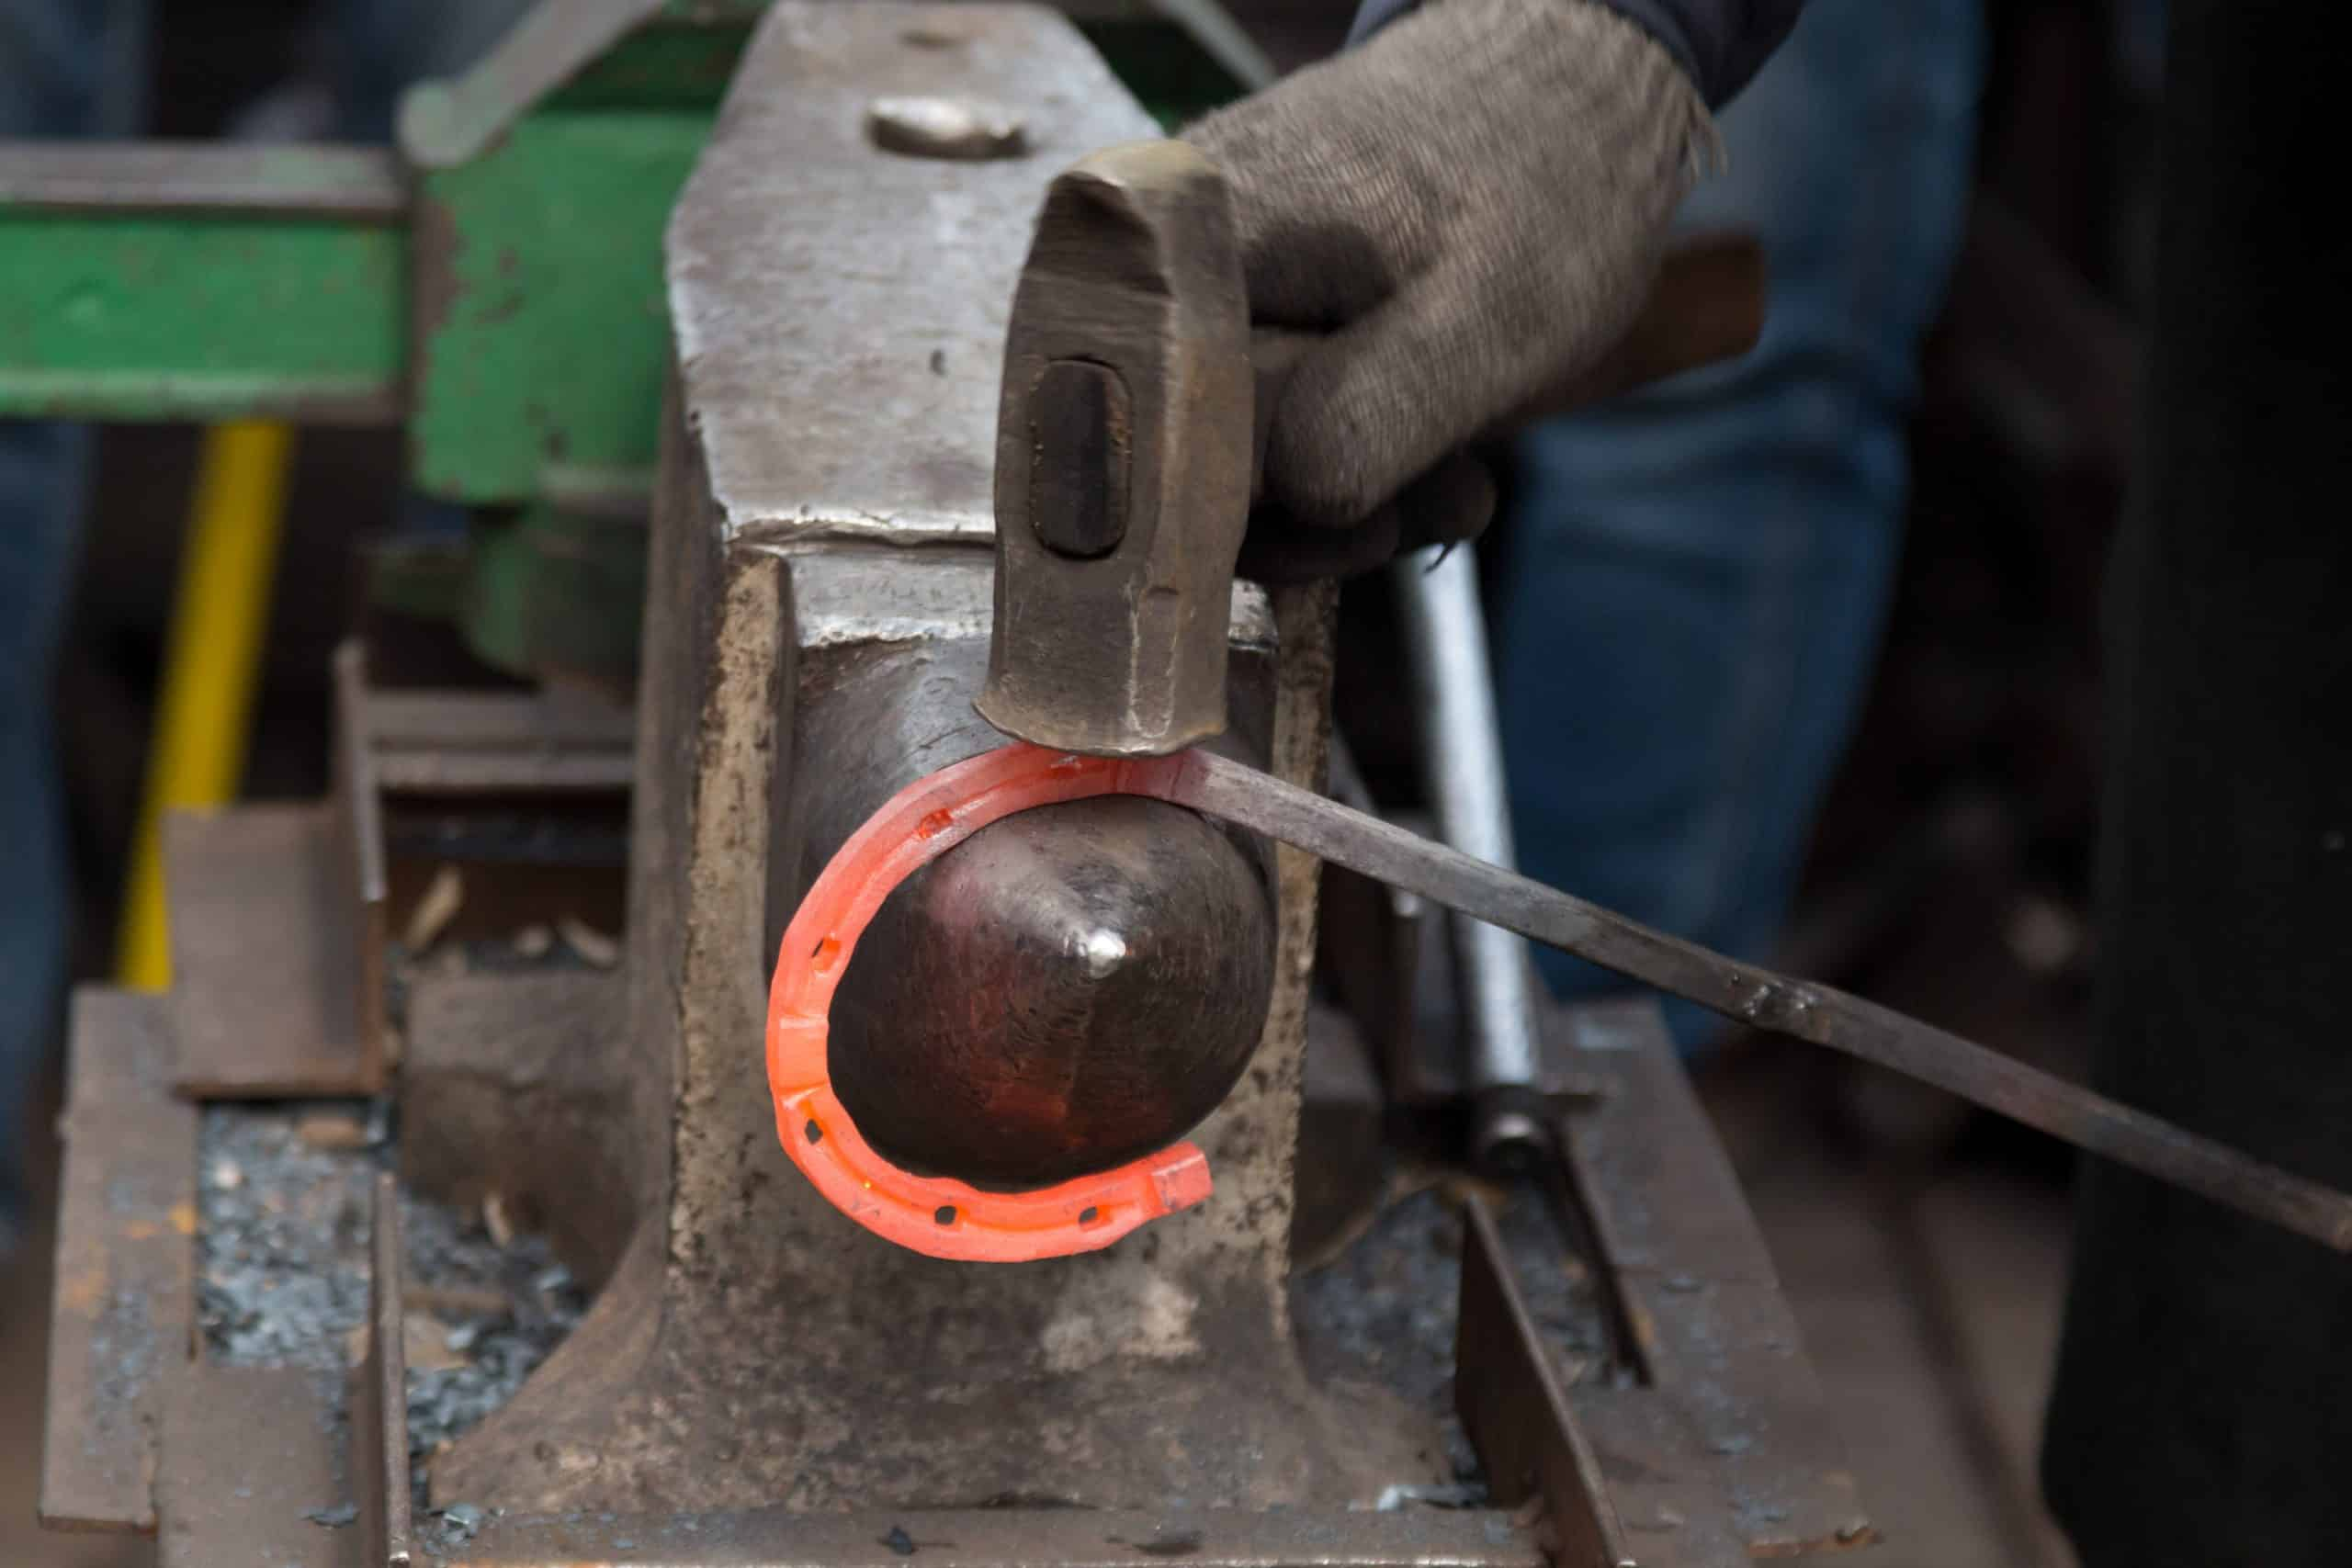 Making the horseshoe from heated red rod